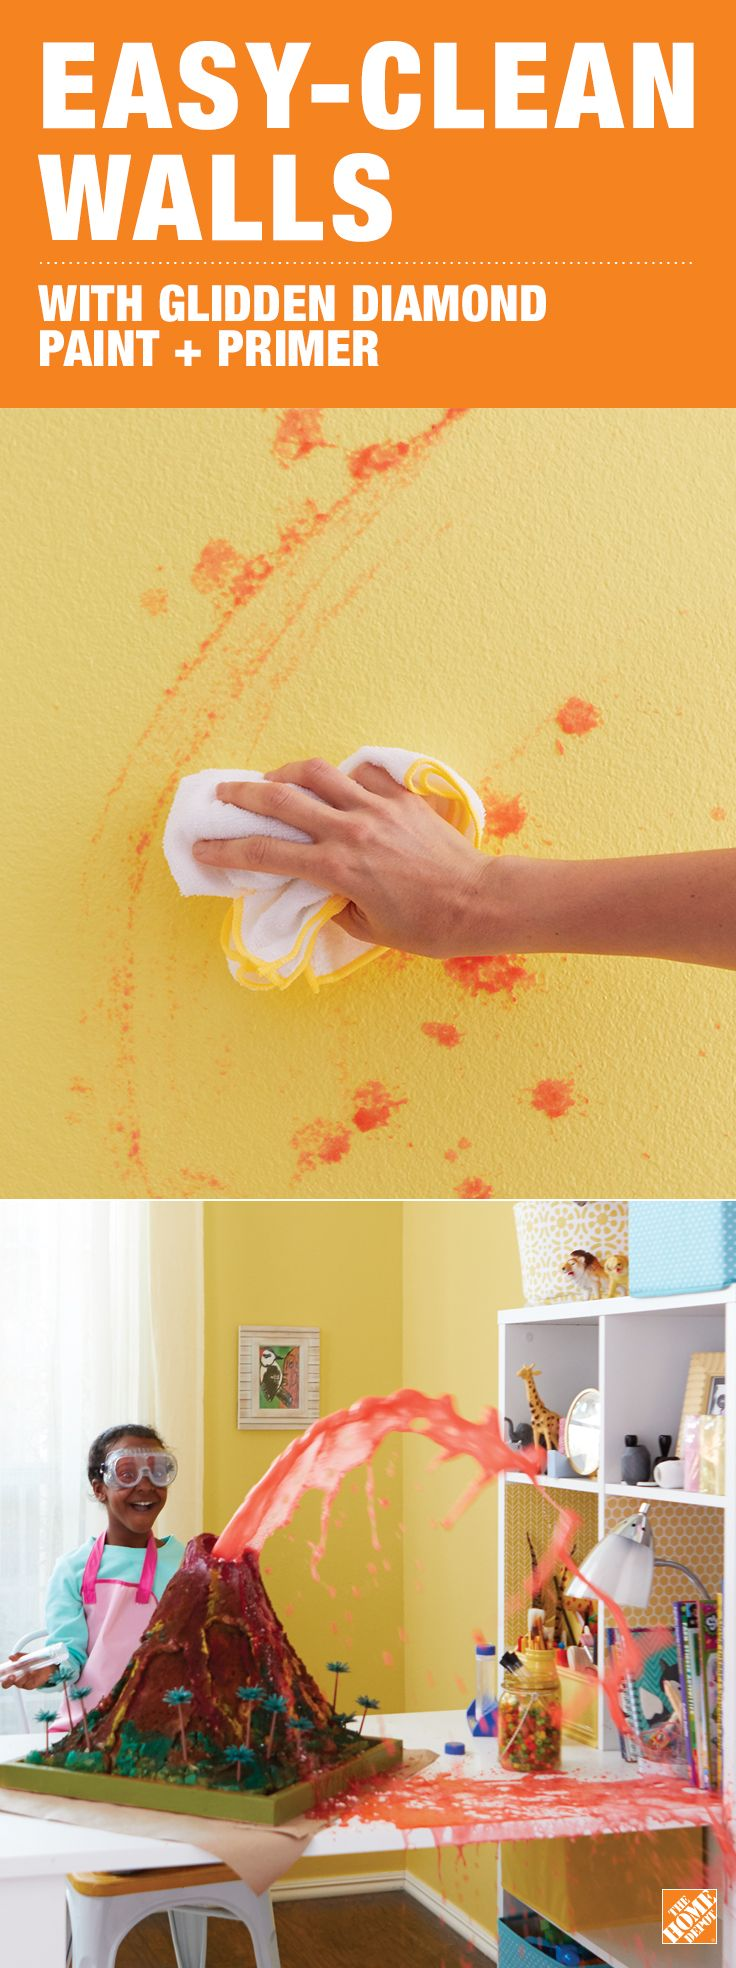 手机壳定制online clothes shopping student discount Scrub your walls without damaging the color Glidden Diamond Paint  Primer stands up to wear and tear It  s a great idea for kids  rooms hallways and anywhere you want to keep color looking beautiful Available exclusively at The Home Depot